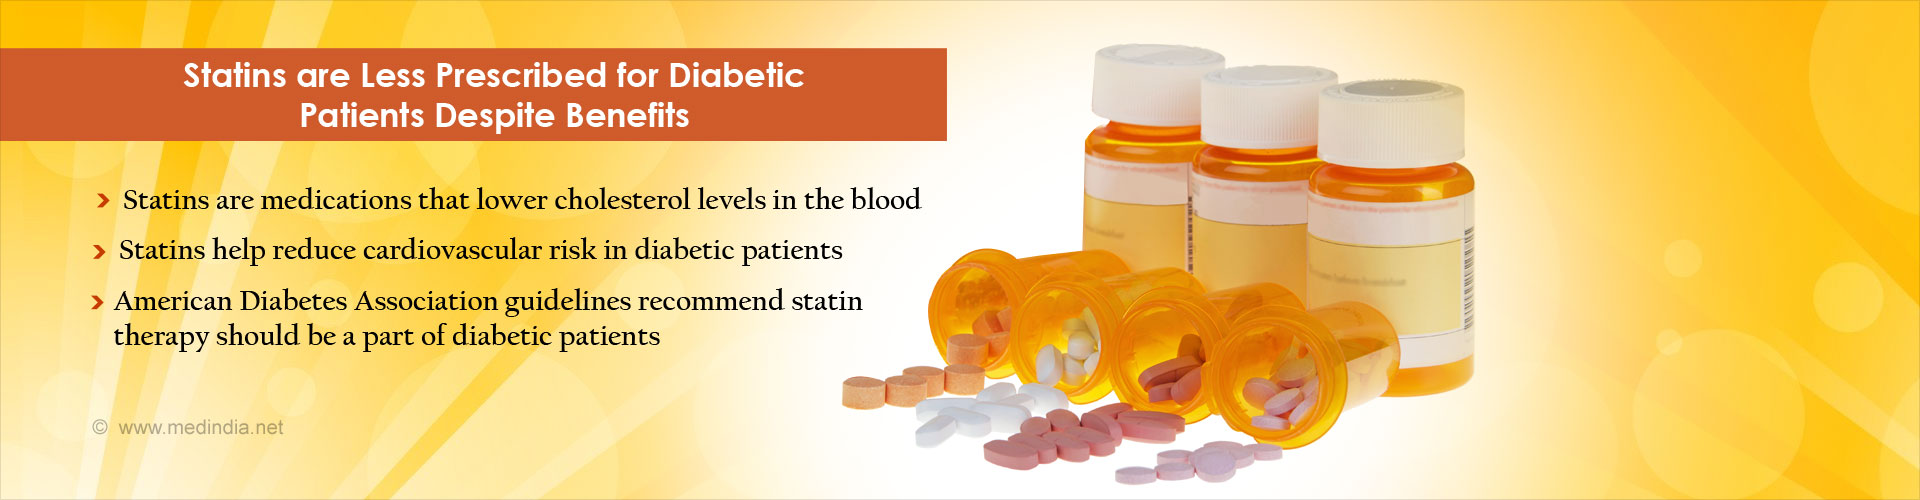 Statin Use in Diabetic Patients Has Decreased Despite Cardioprotective Benefits